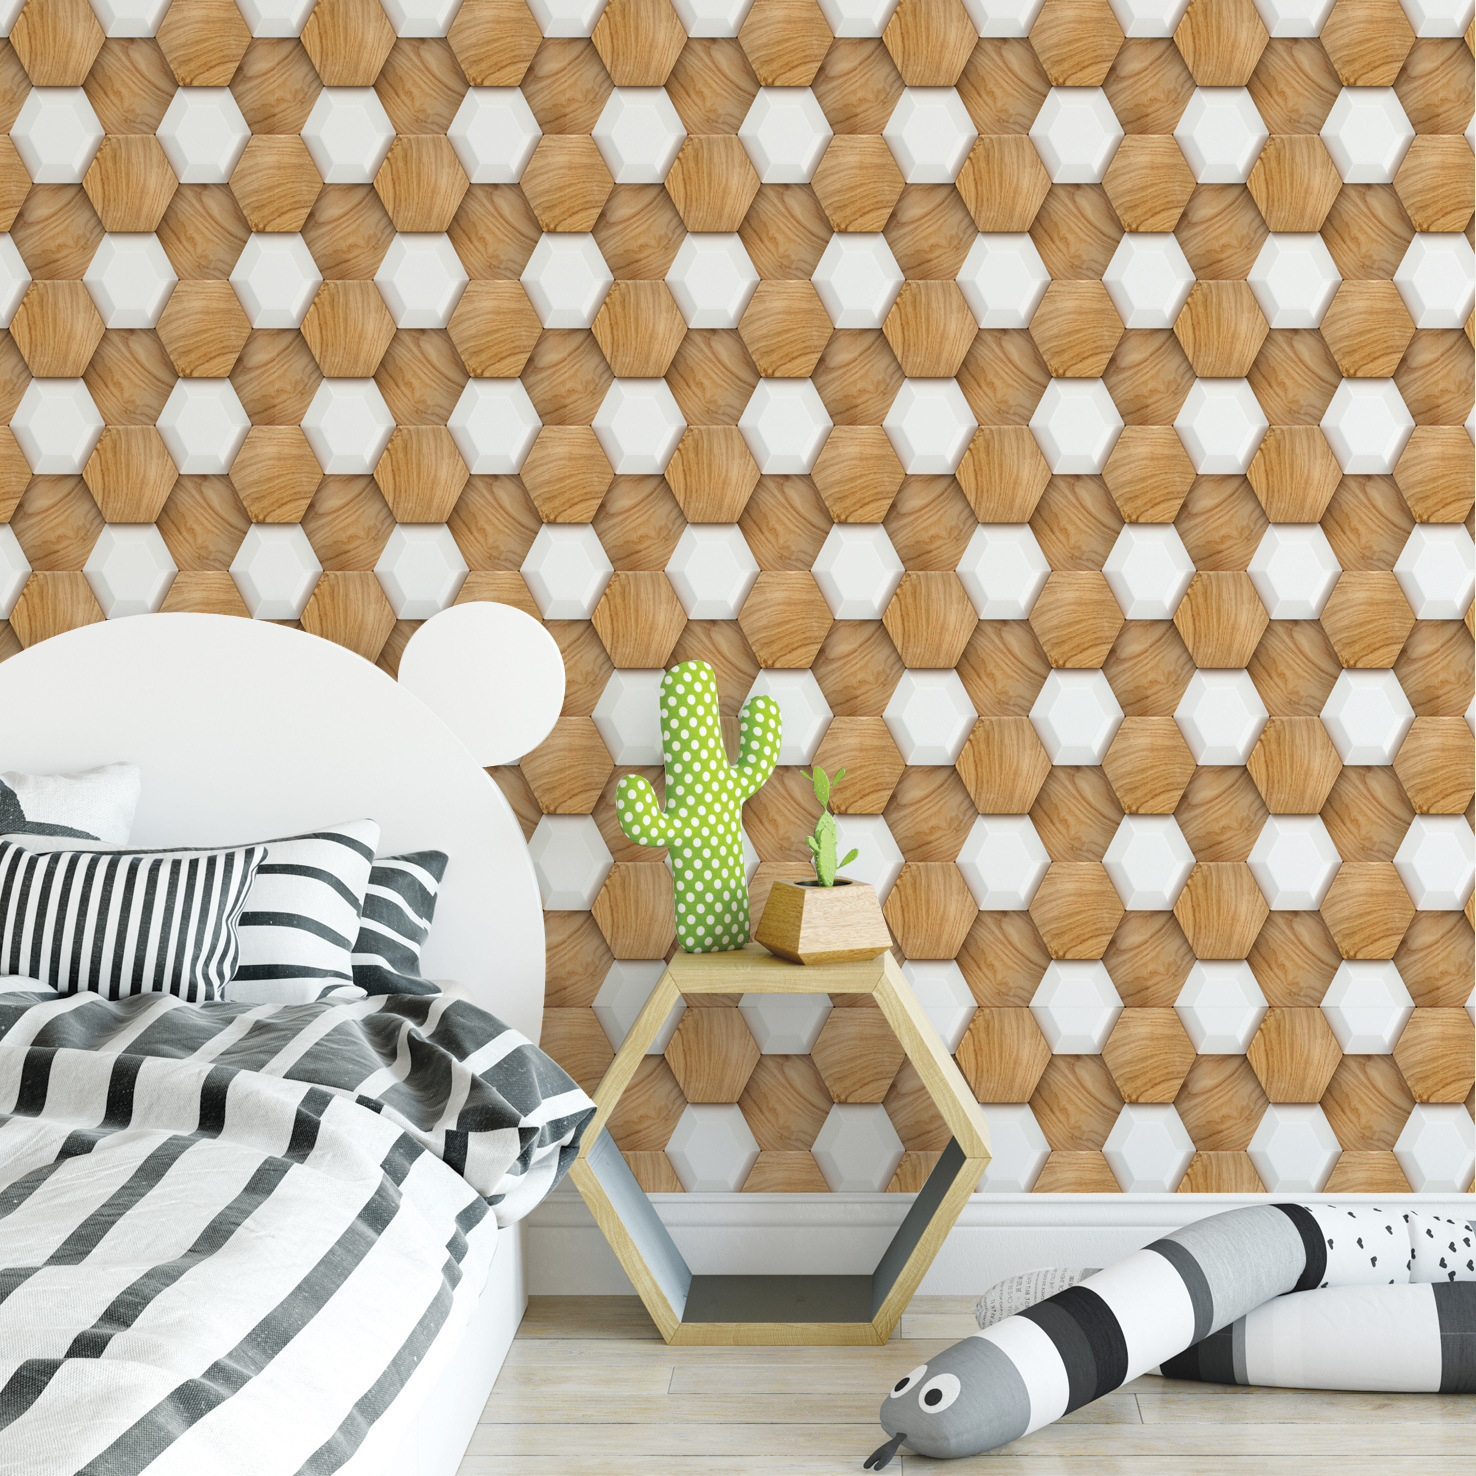 3D Brick Pattern Retro Wintage Bedroom Living Room Kitchen Bathroom Vanity Wall Decorative Painting Wall Sticker B in Wall Stickers from Home Garden